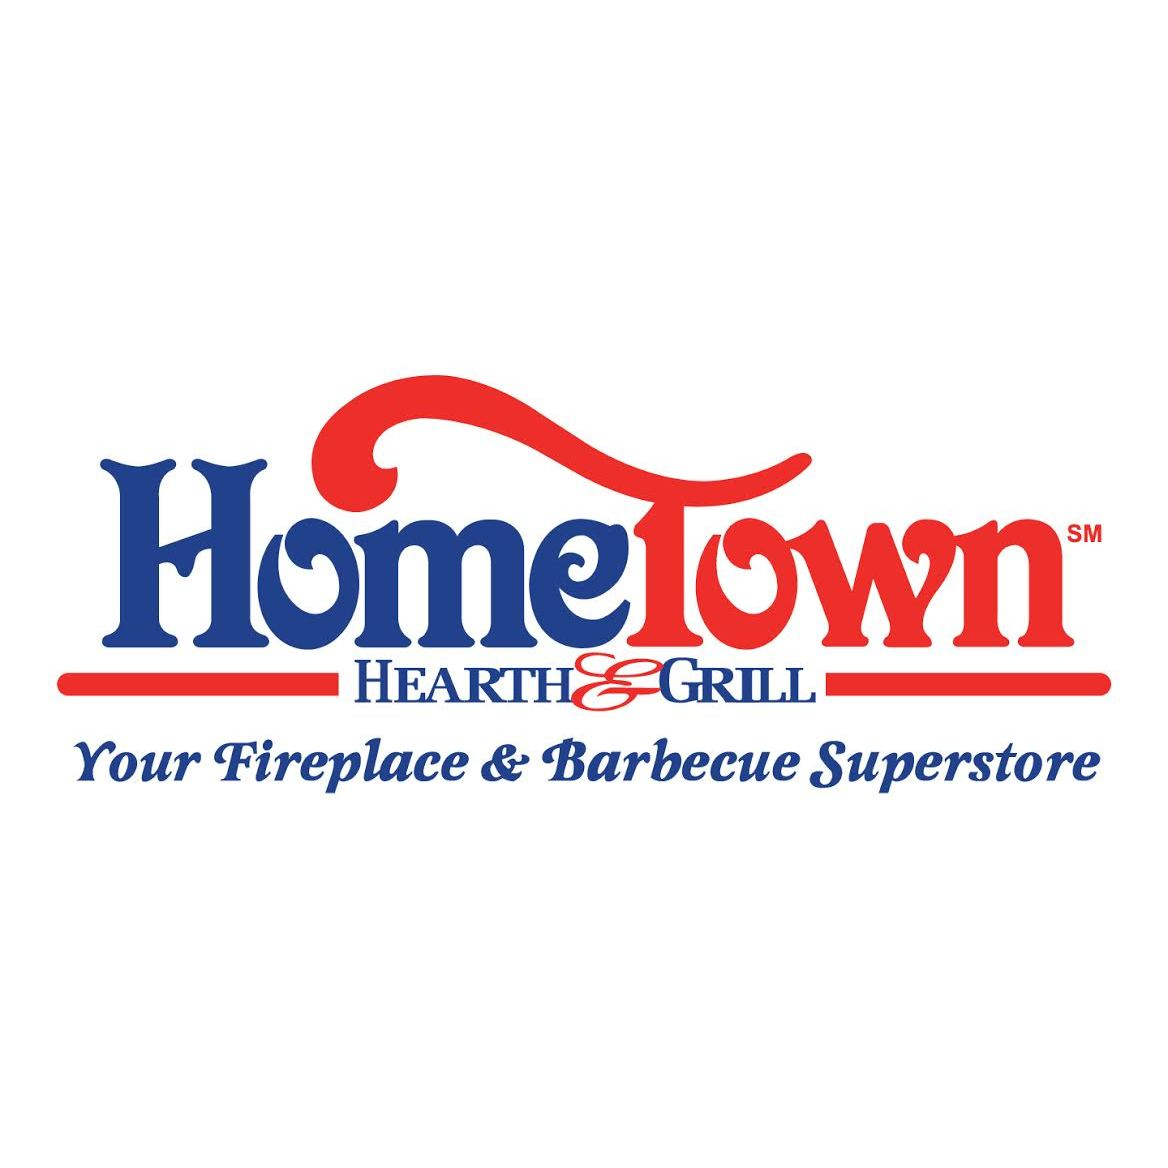 Hometown Hearth & Grill